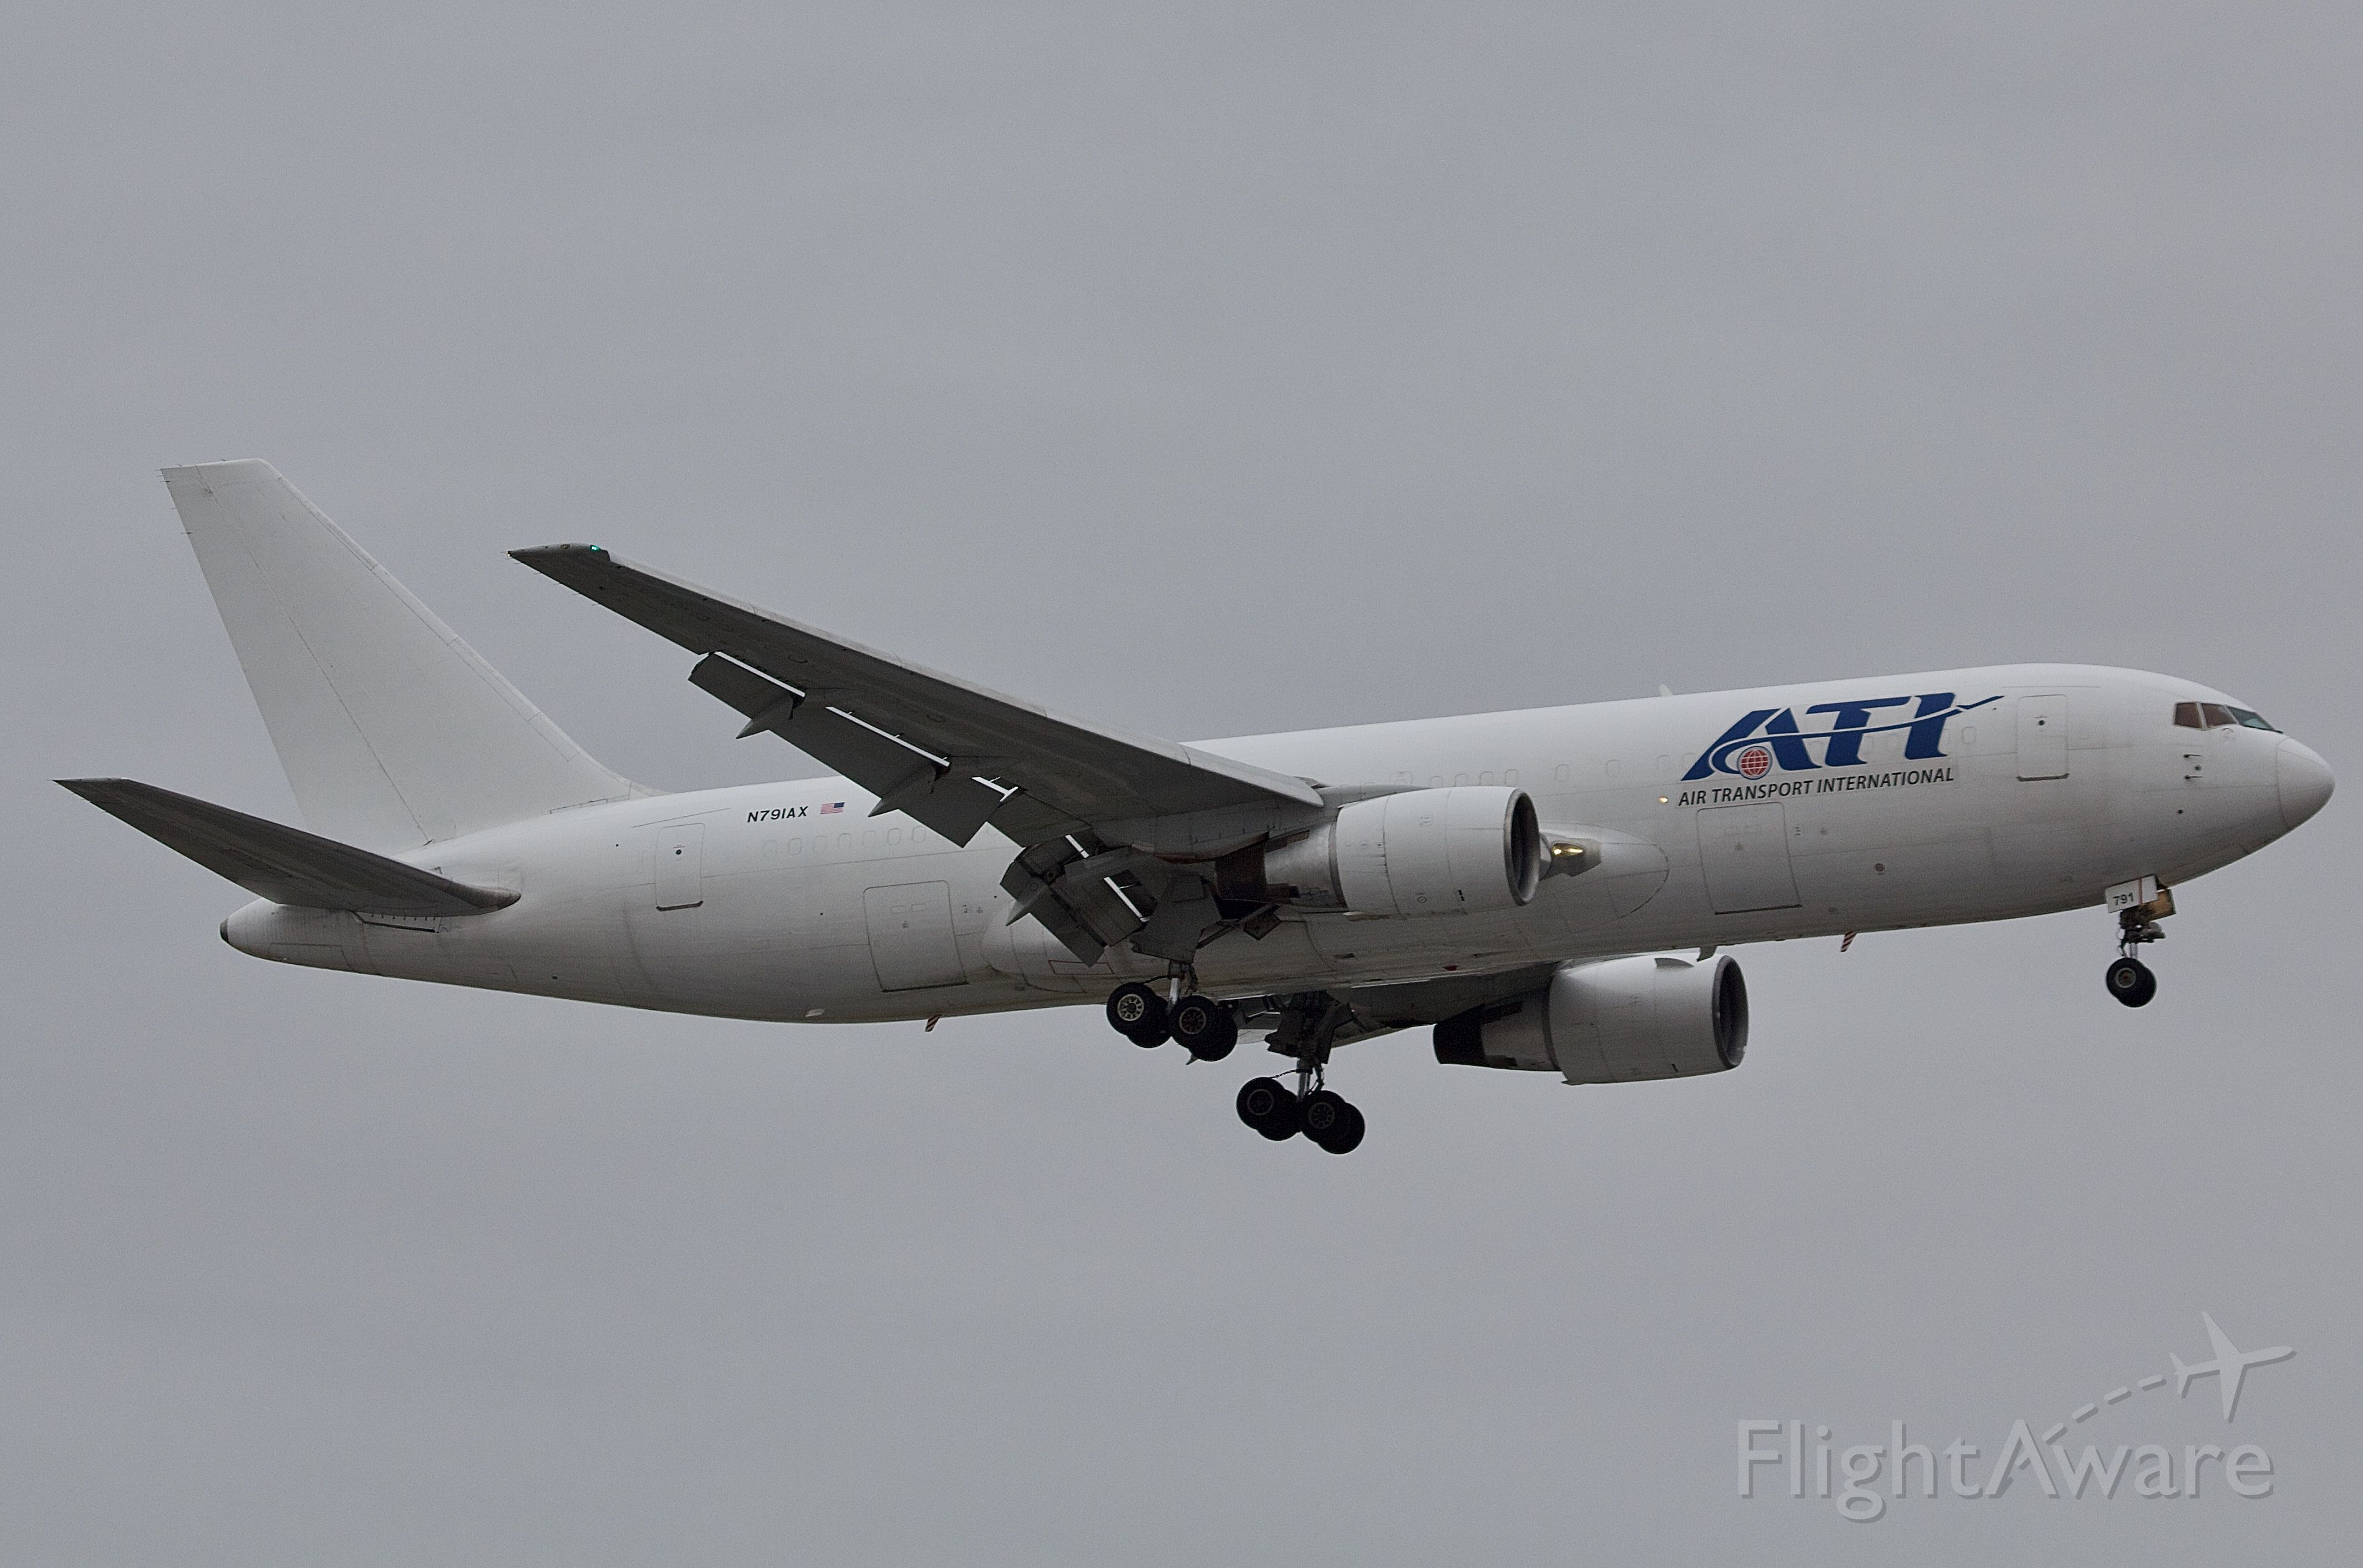 BOEING 767-200 (N791AX) - Originally delivered to ANA in 1985, now living out her days as a freighter